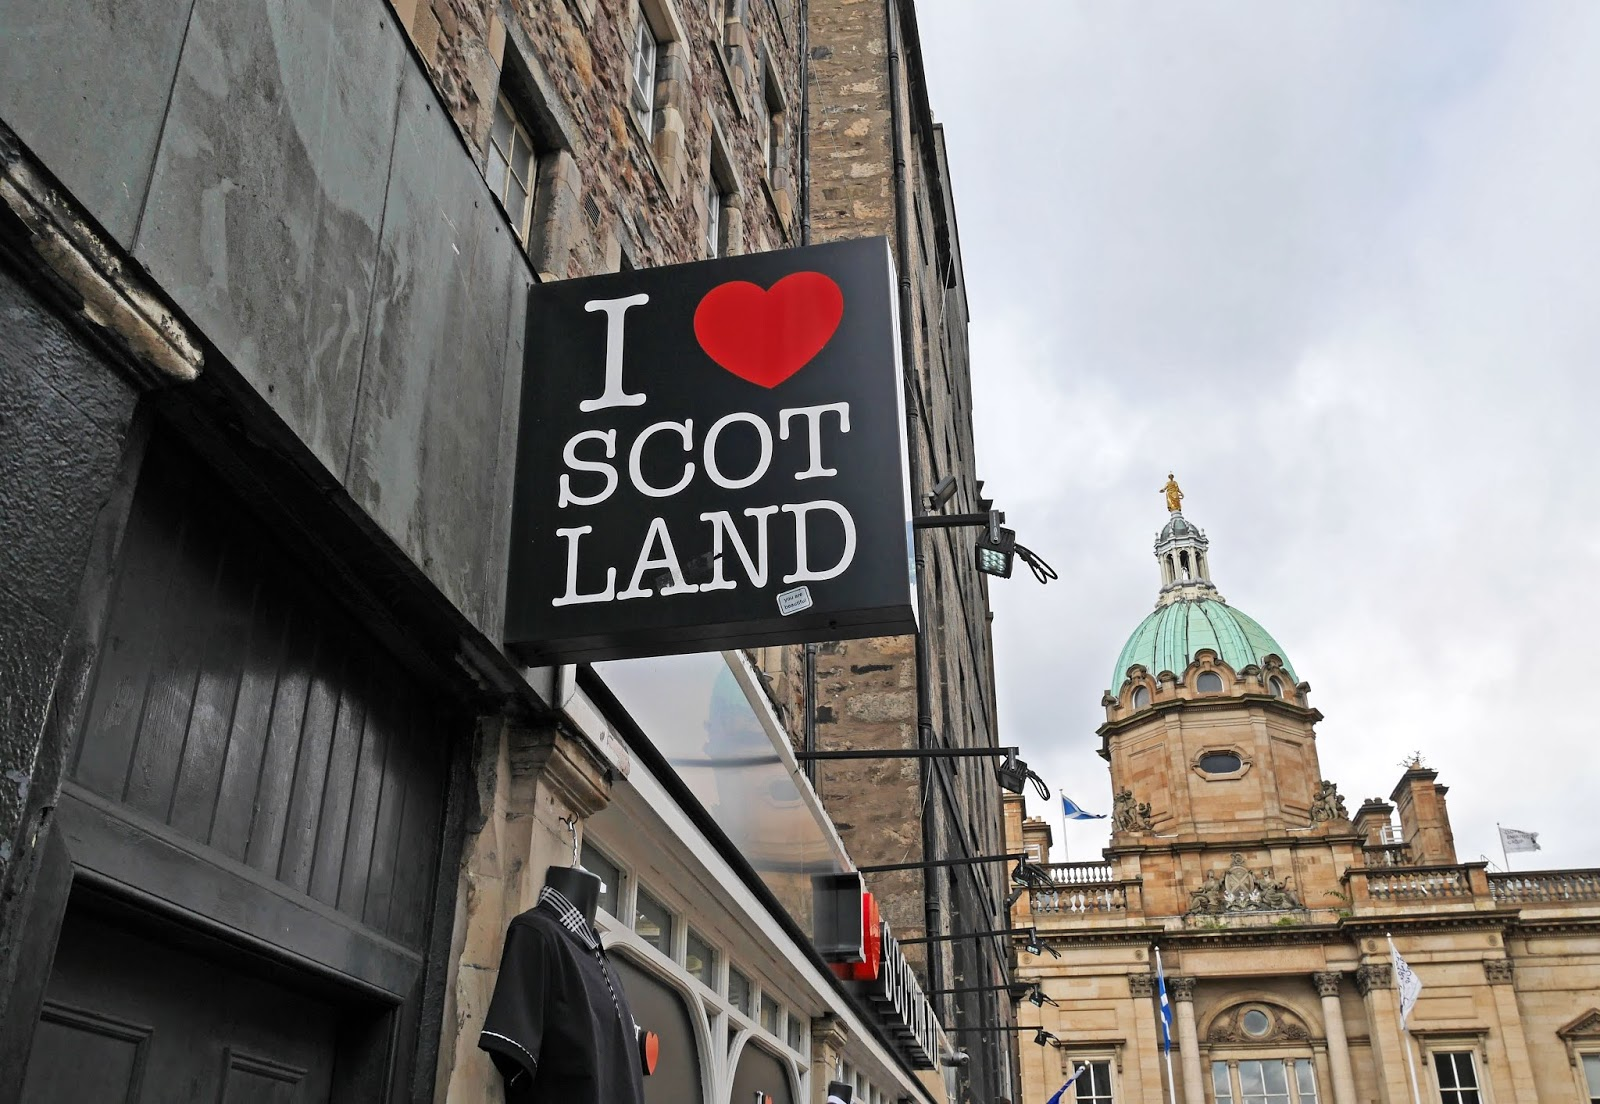 I heart Scotland sign near the Royal Mile, Edinburgh